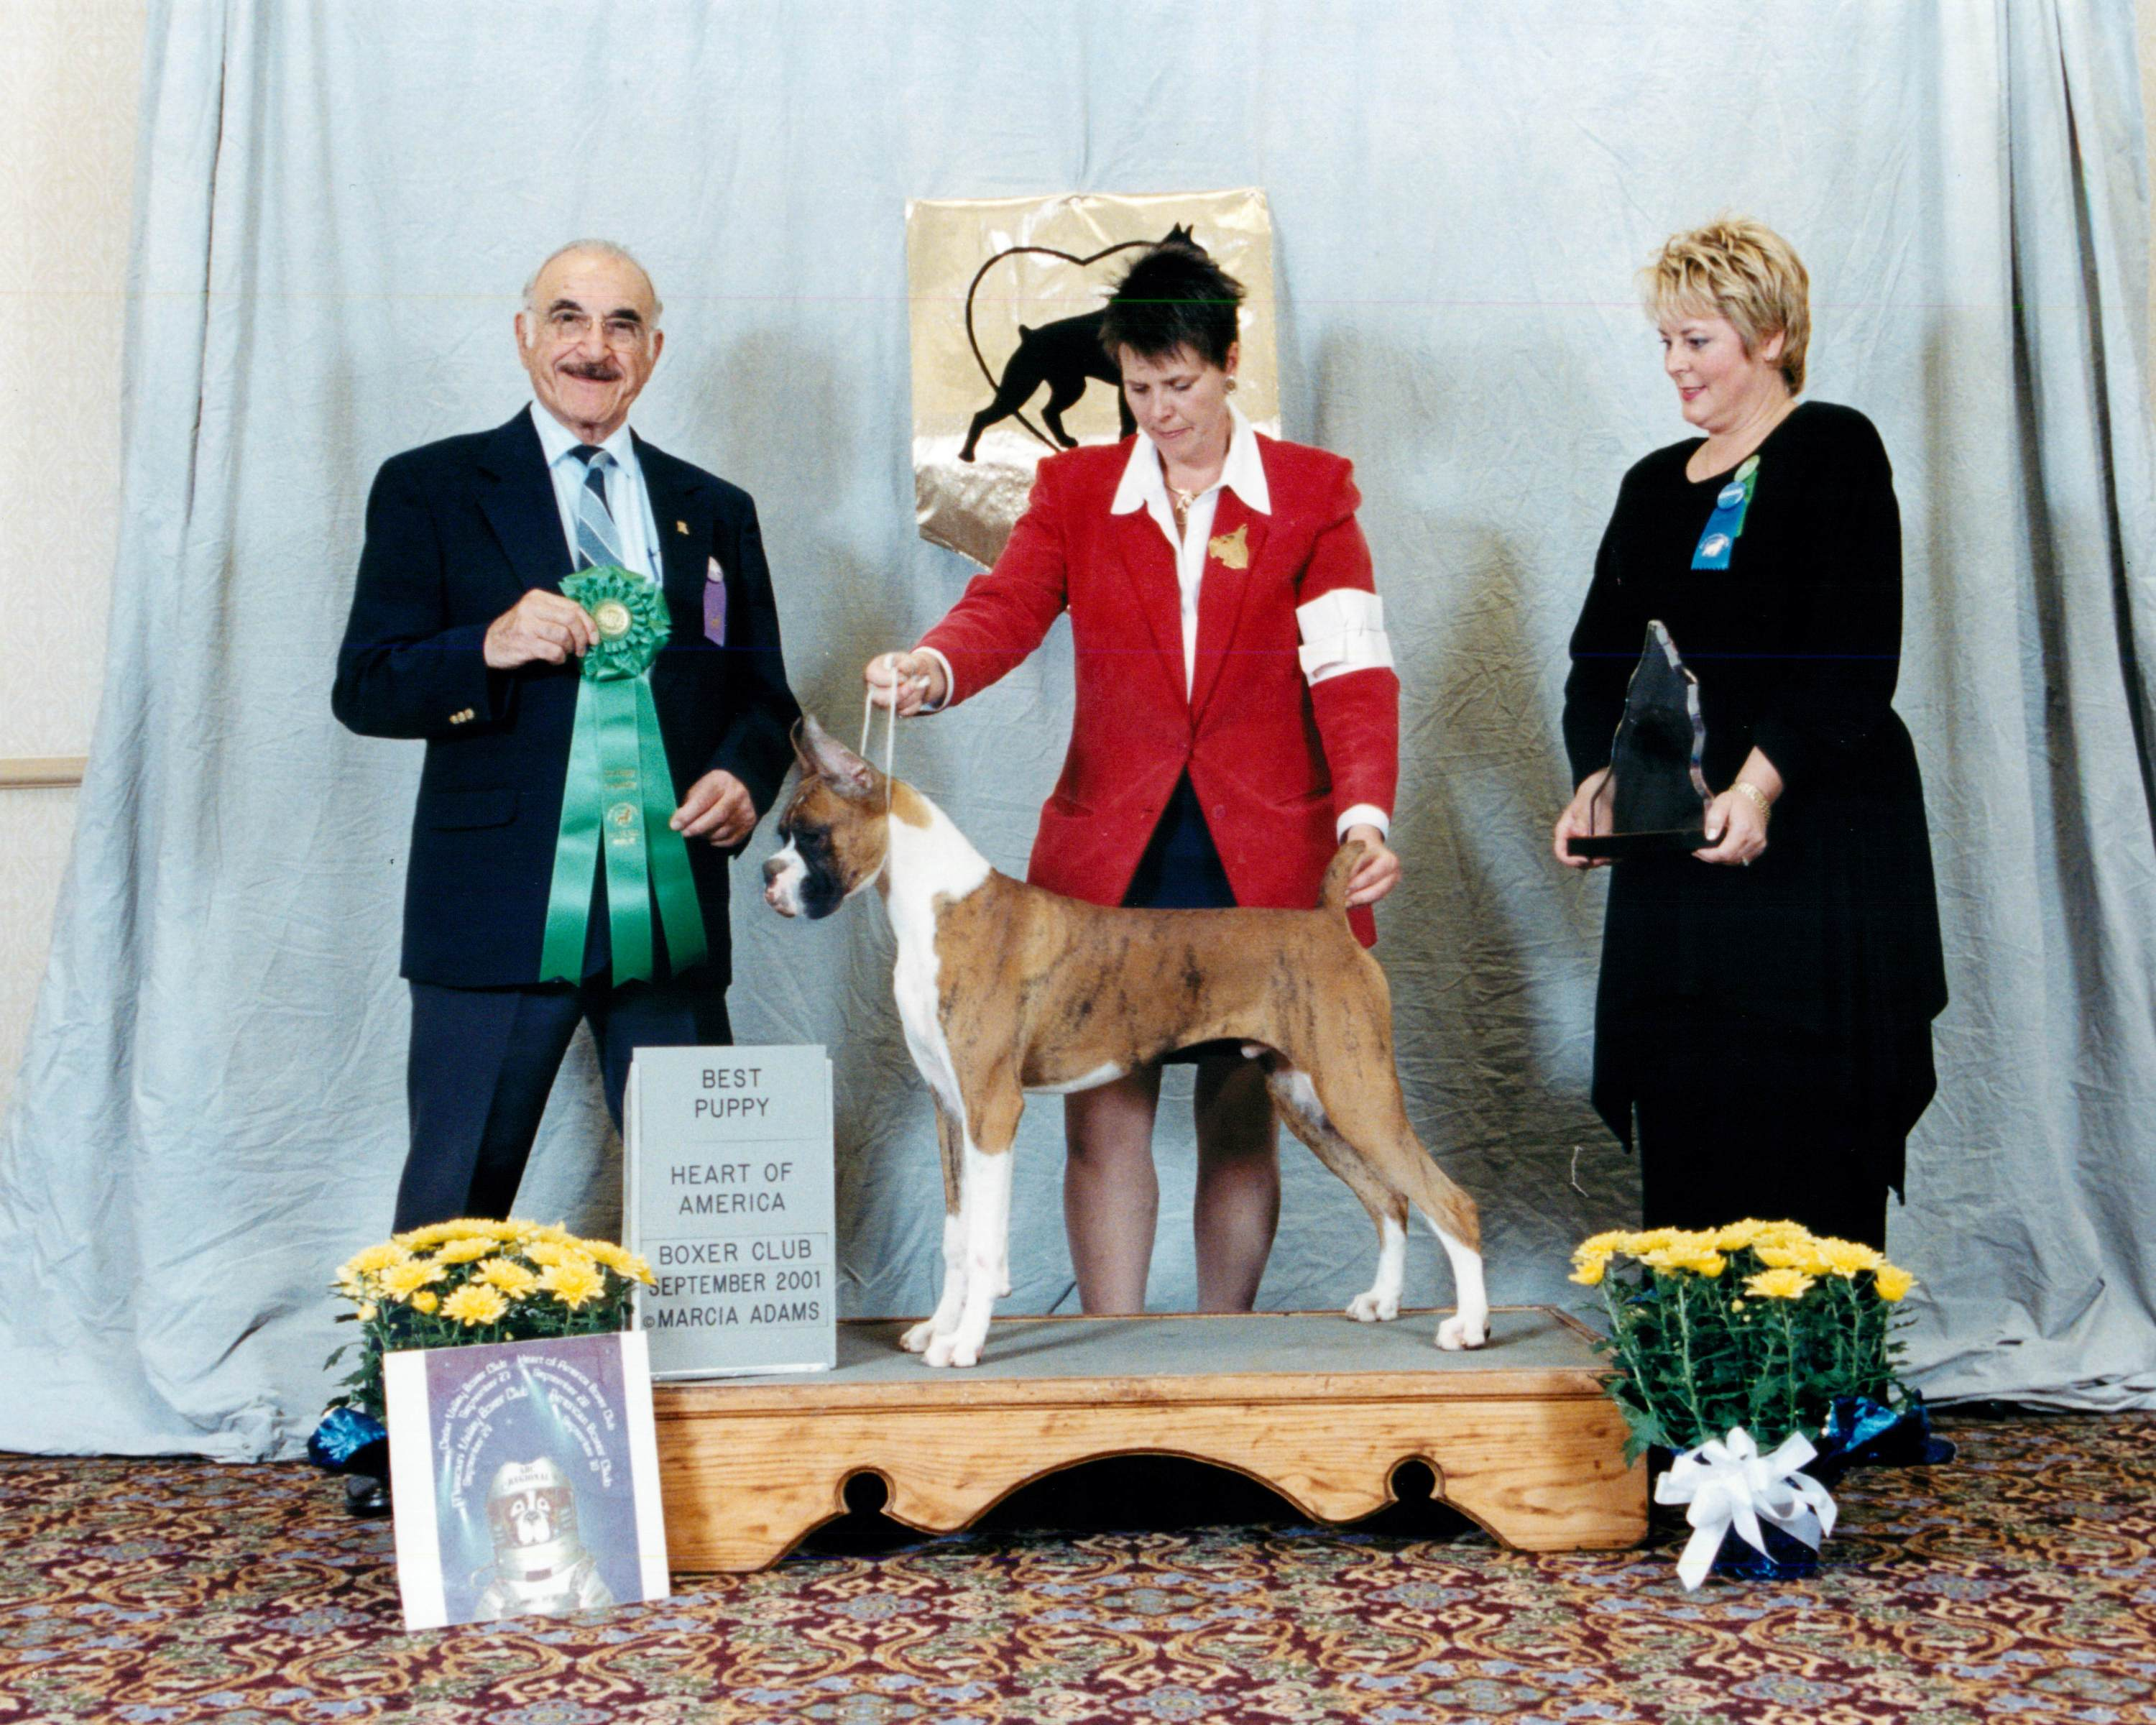 Best Puppy @ 2001 Specialty Show #2